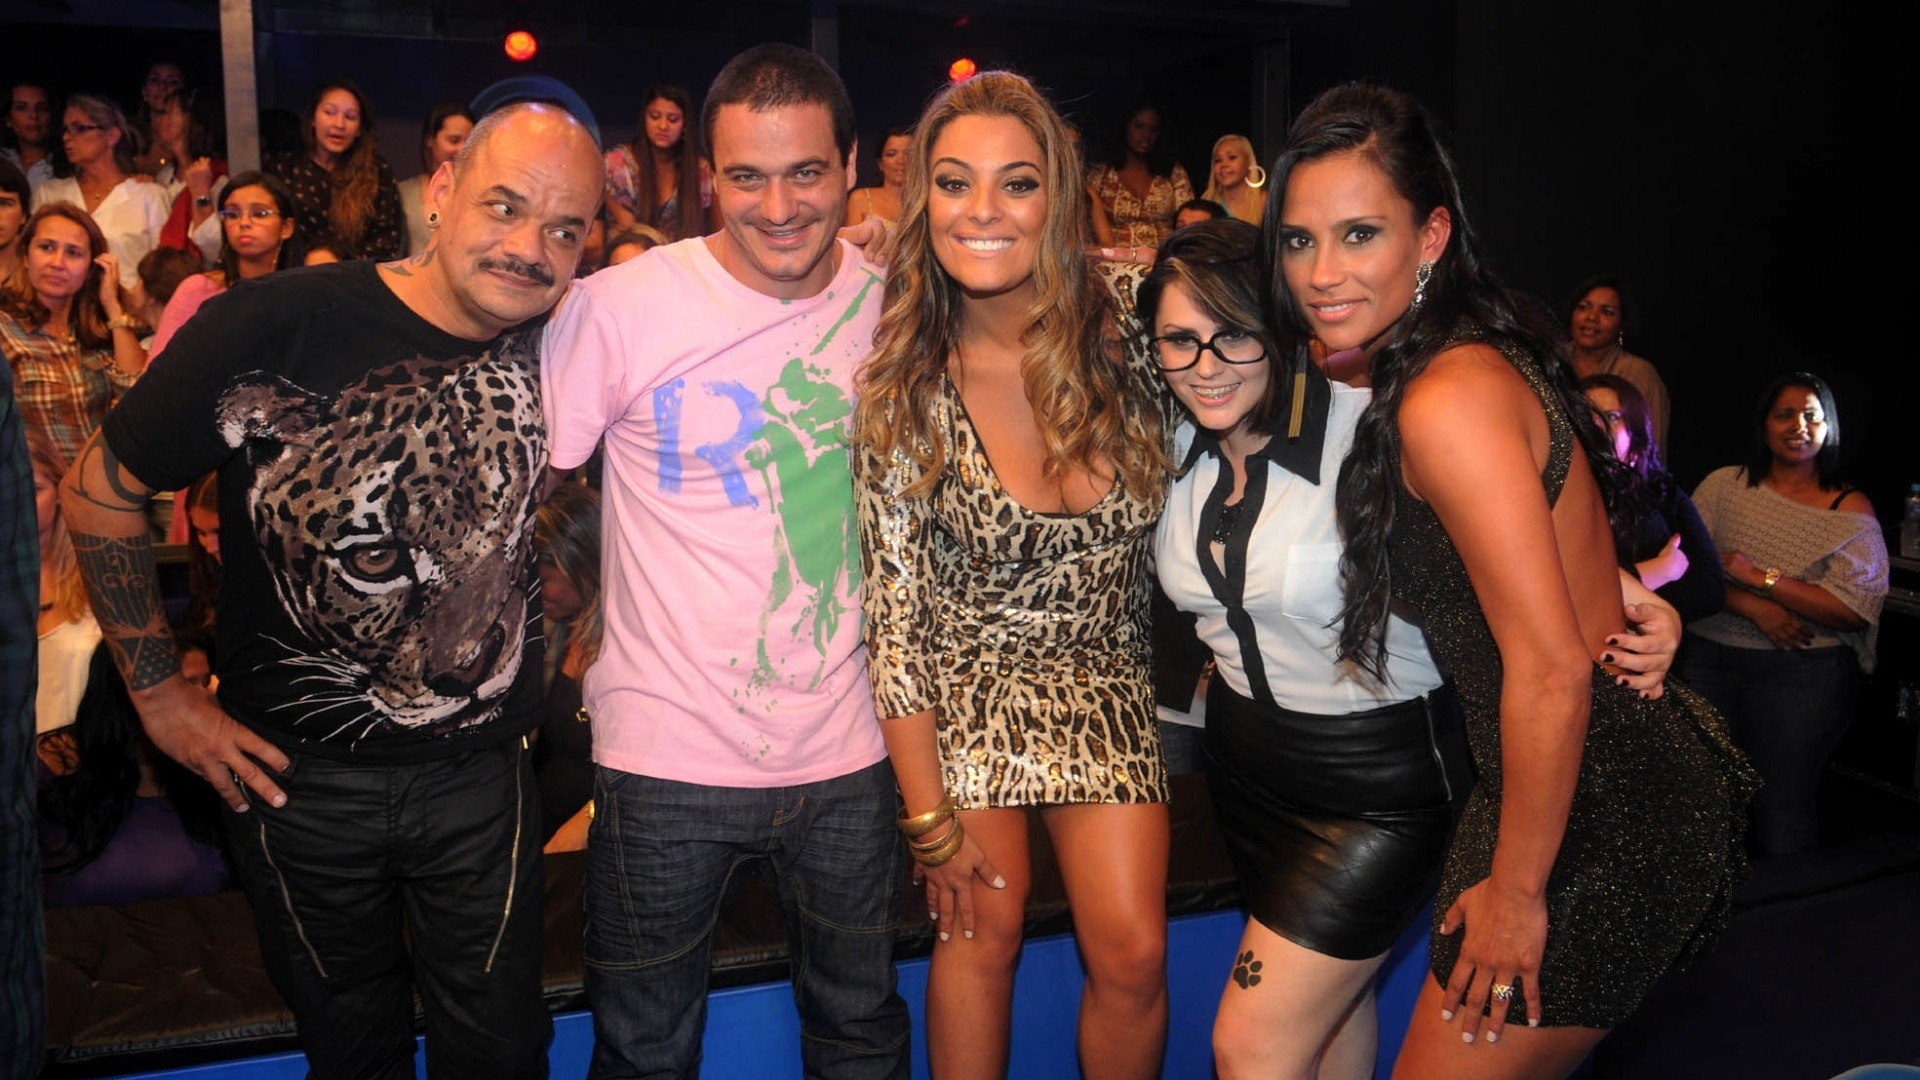 Joo Carvalho, Rafa, Monique, Mayara e Kelly posam para foto (29/3/12)